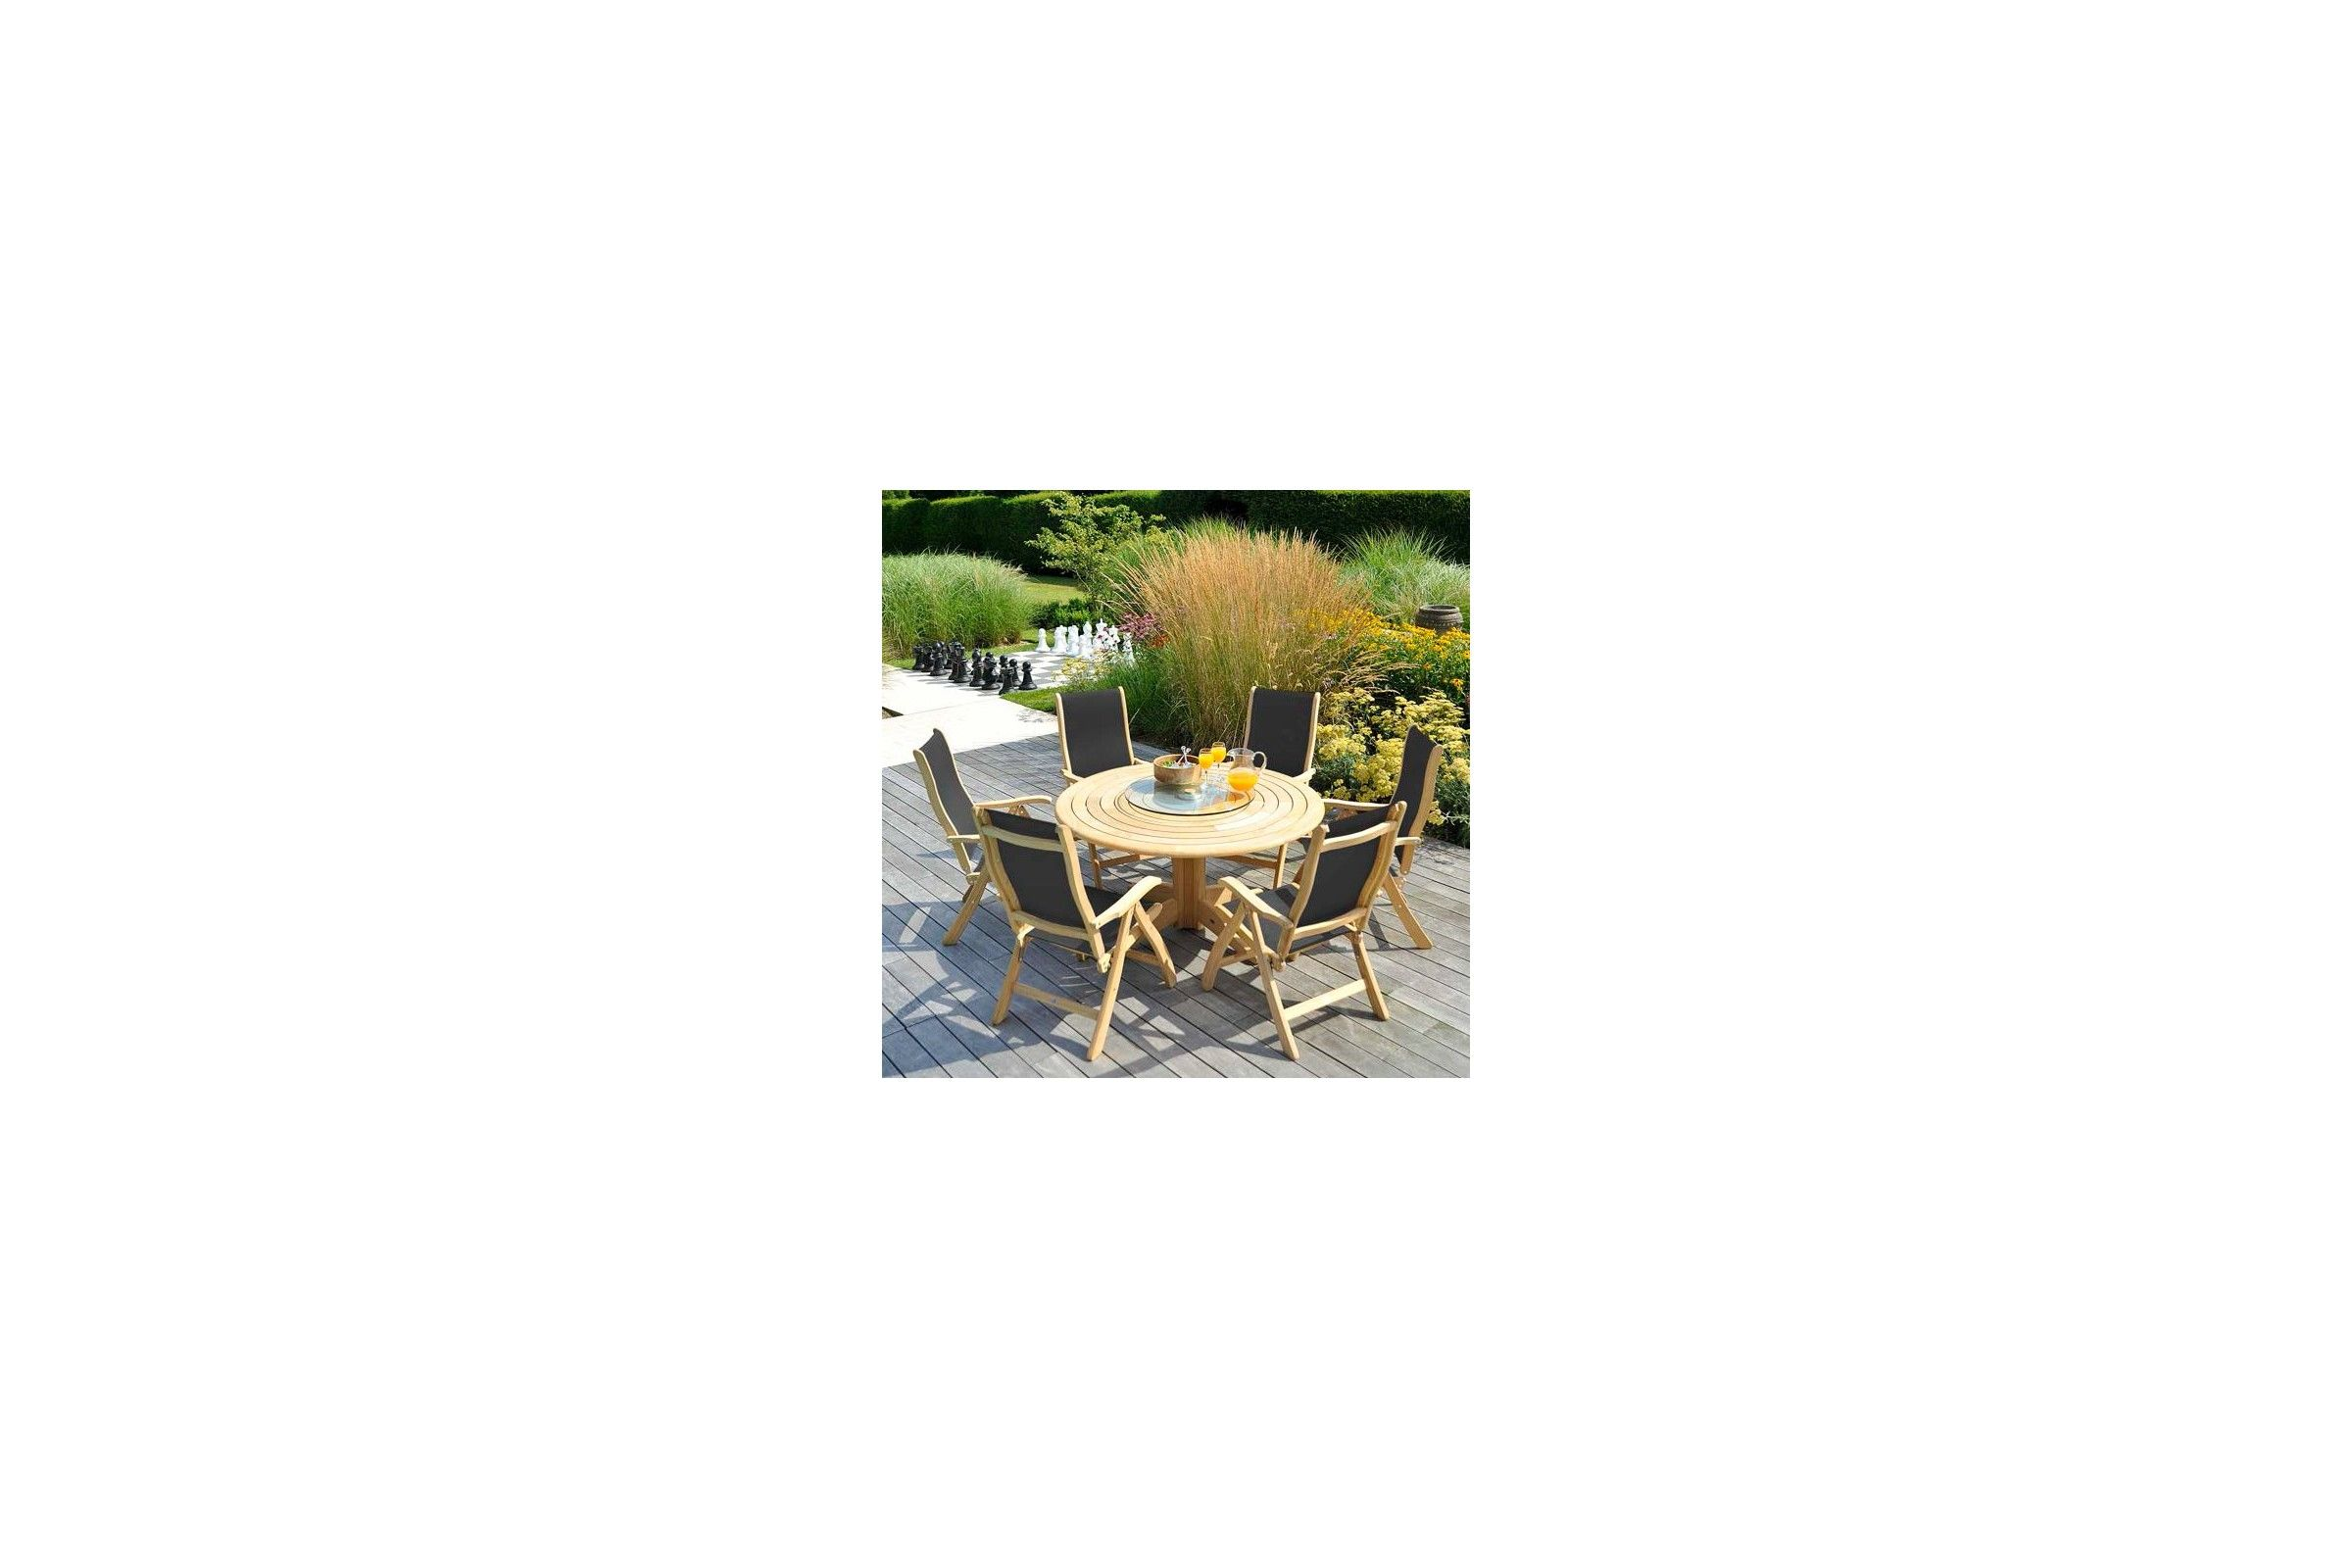 table de jardin ronde en bois d 145 cm et 175 cm haut de gamme la galerie du teck. Black Bedroom Furniture Sets. Home Design Ideas